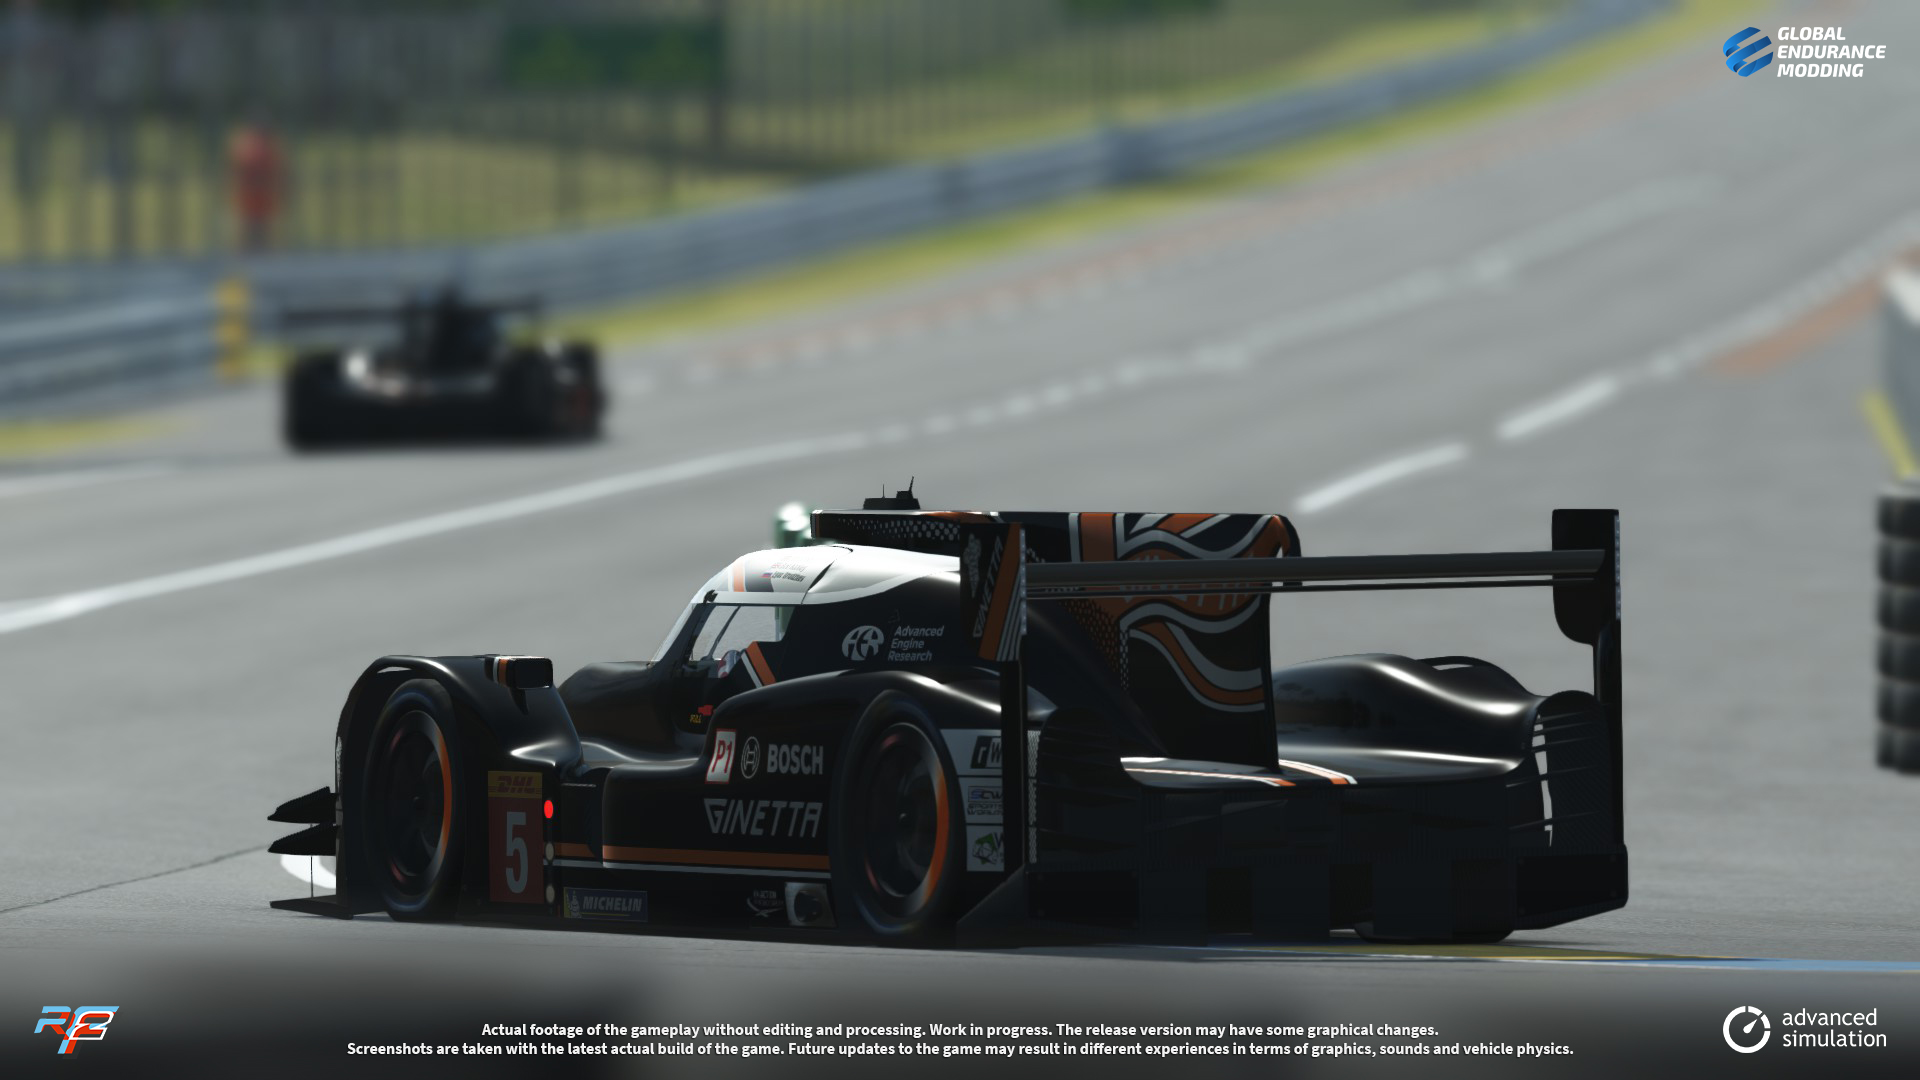 screen-013 Ginetta G60-LT-P1 LMP1 for rFactor 2 – More Previews